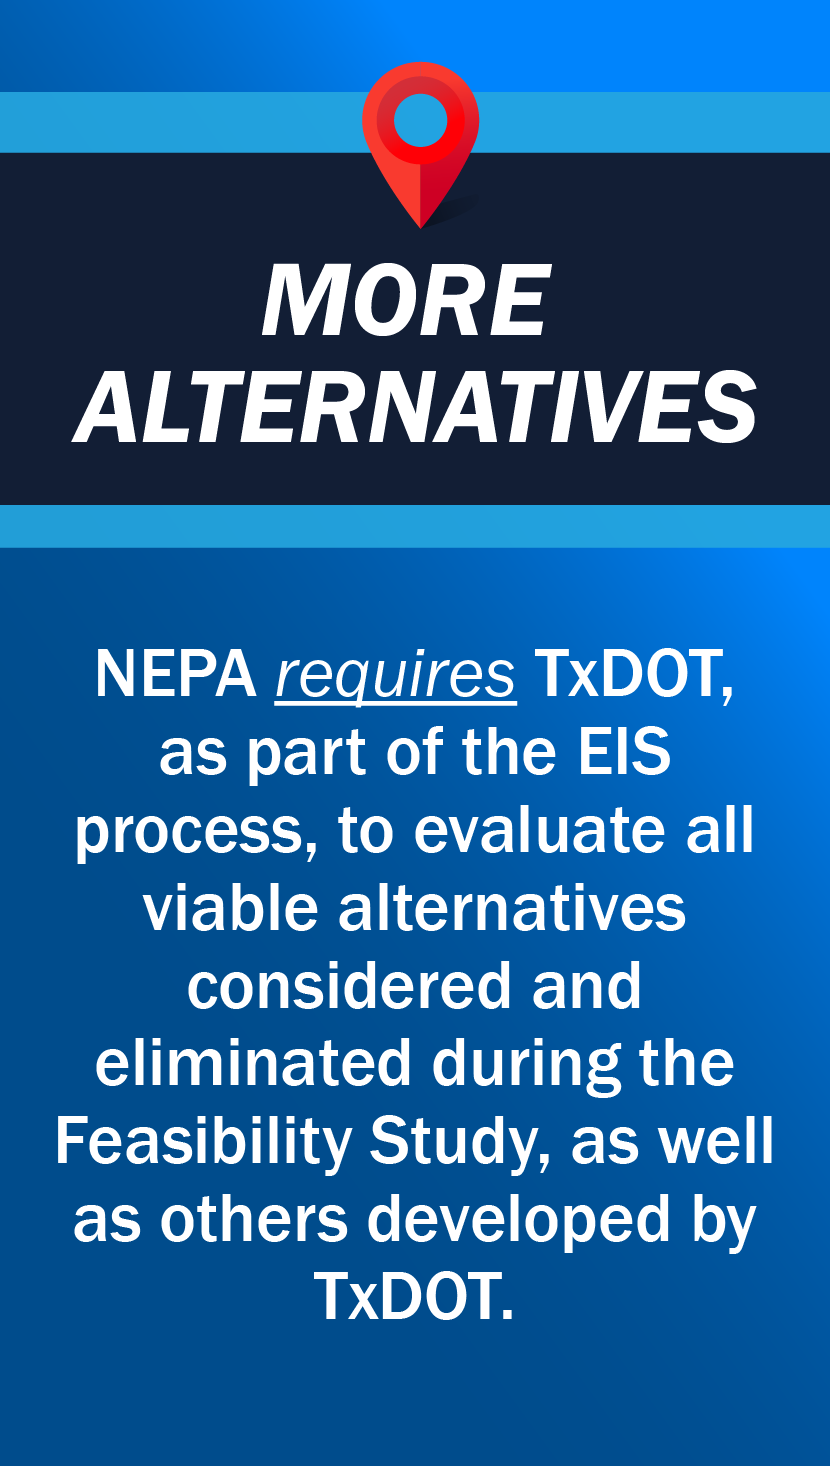 NEPA requires TxDOT, as part of the EIS  process, to evaluate all viable alternatives  considered and  eliminated during the Feasibility Study, as well as others developed by TxDOT.